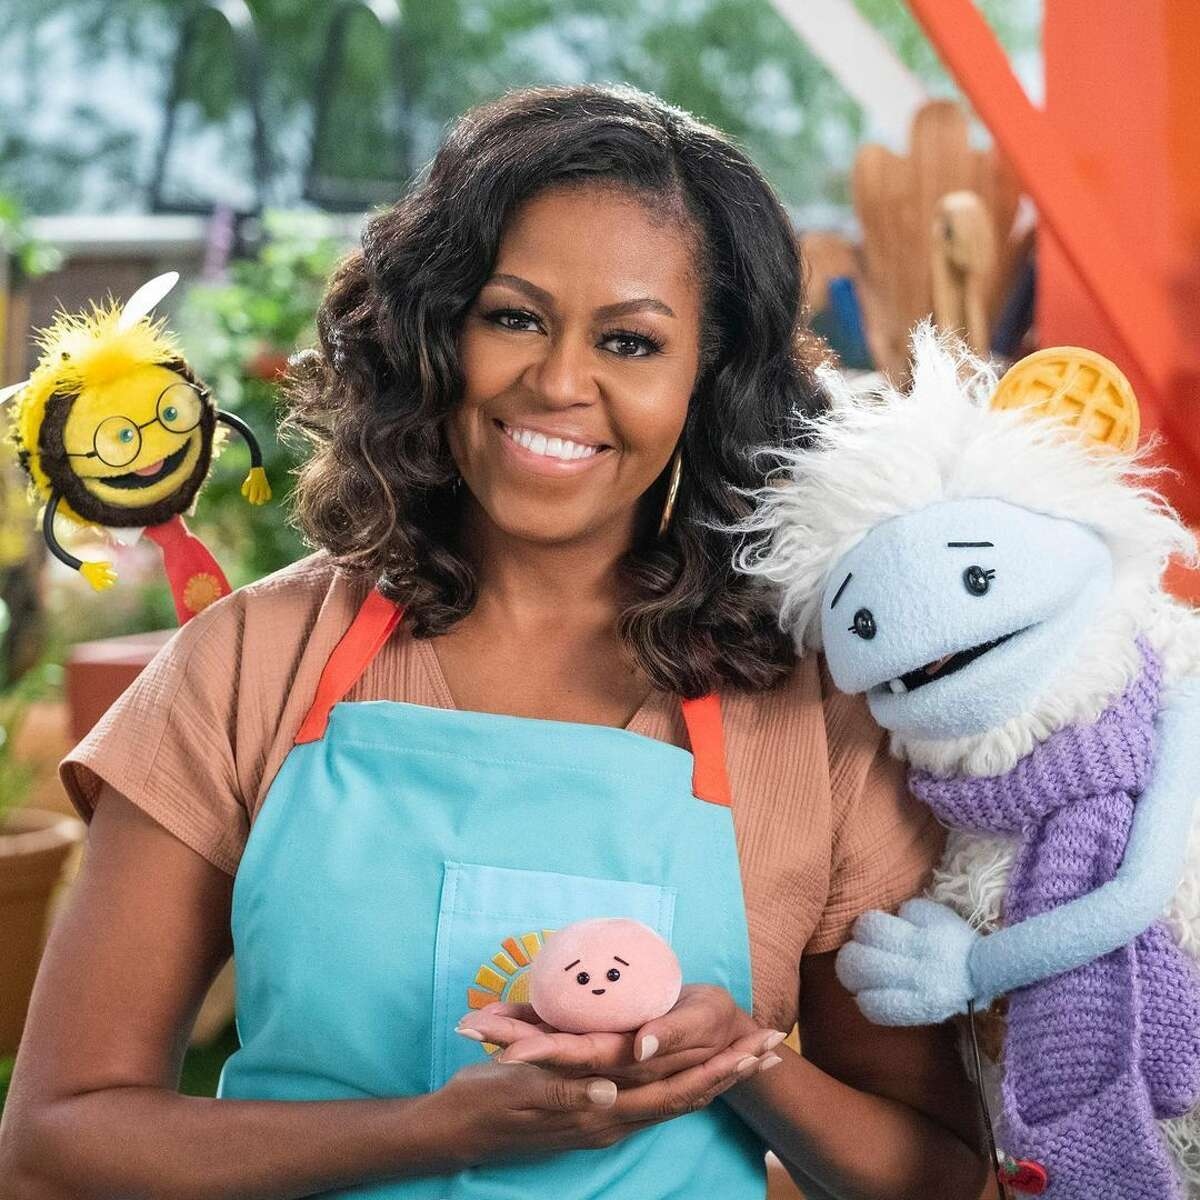 Michelle Obama Announces New Netflix Show: Former First Lady Michelle Obama just announced she's hosting a new Netflix show 'Waffles + Mochi.' Here's the release date, cast, spoilers, episodes, and more: